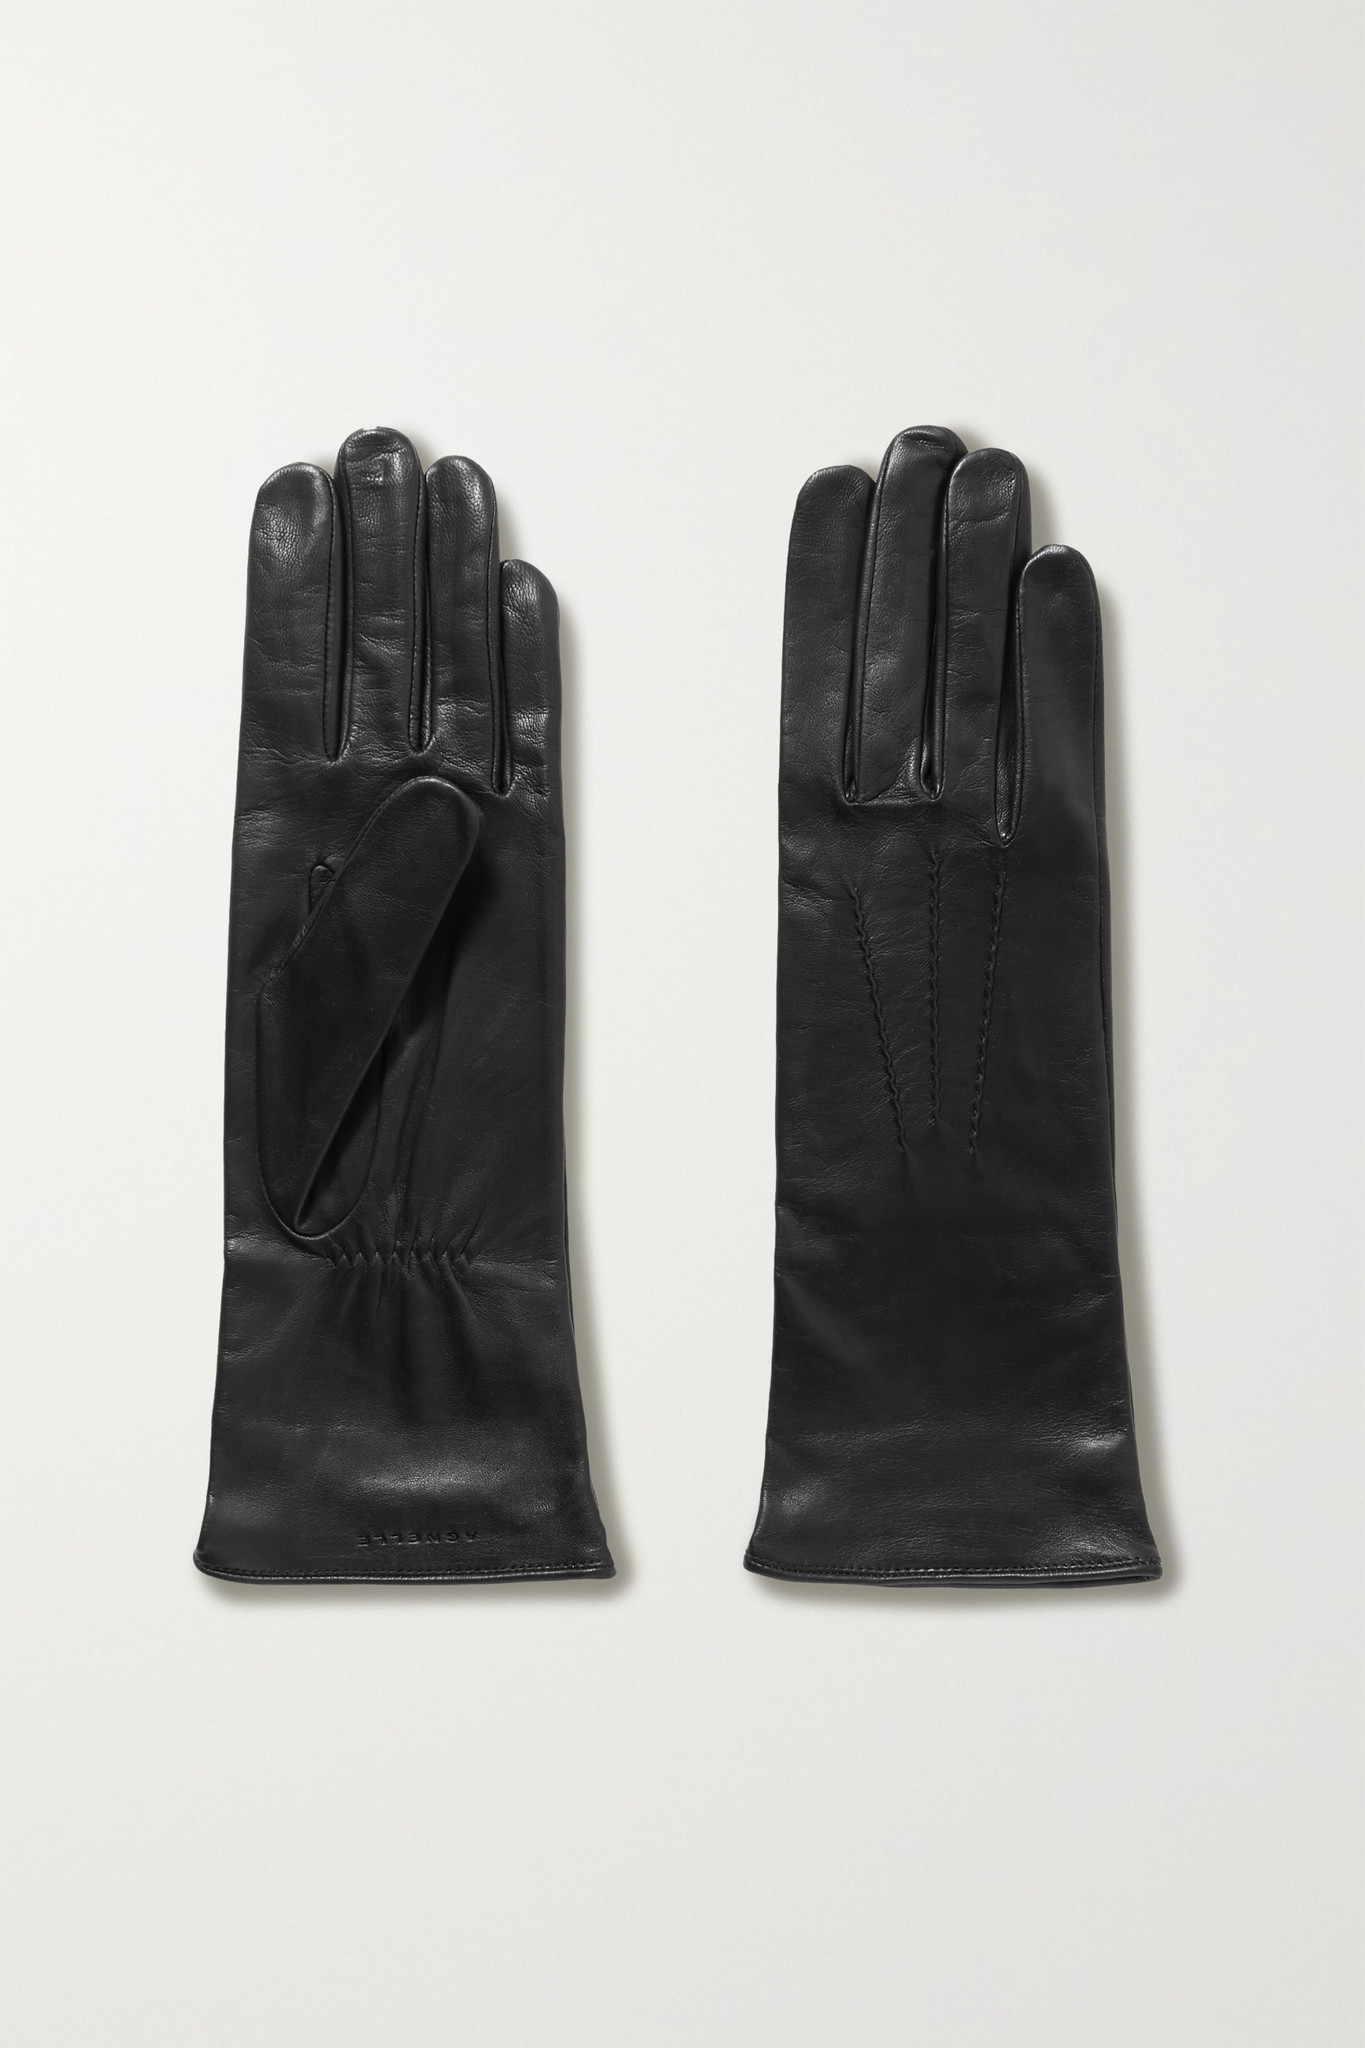 Agnelle - Grace Leather Gloves - Black - 7.5